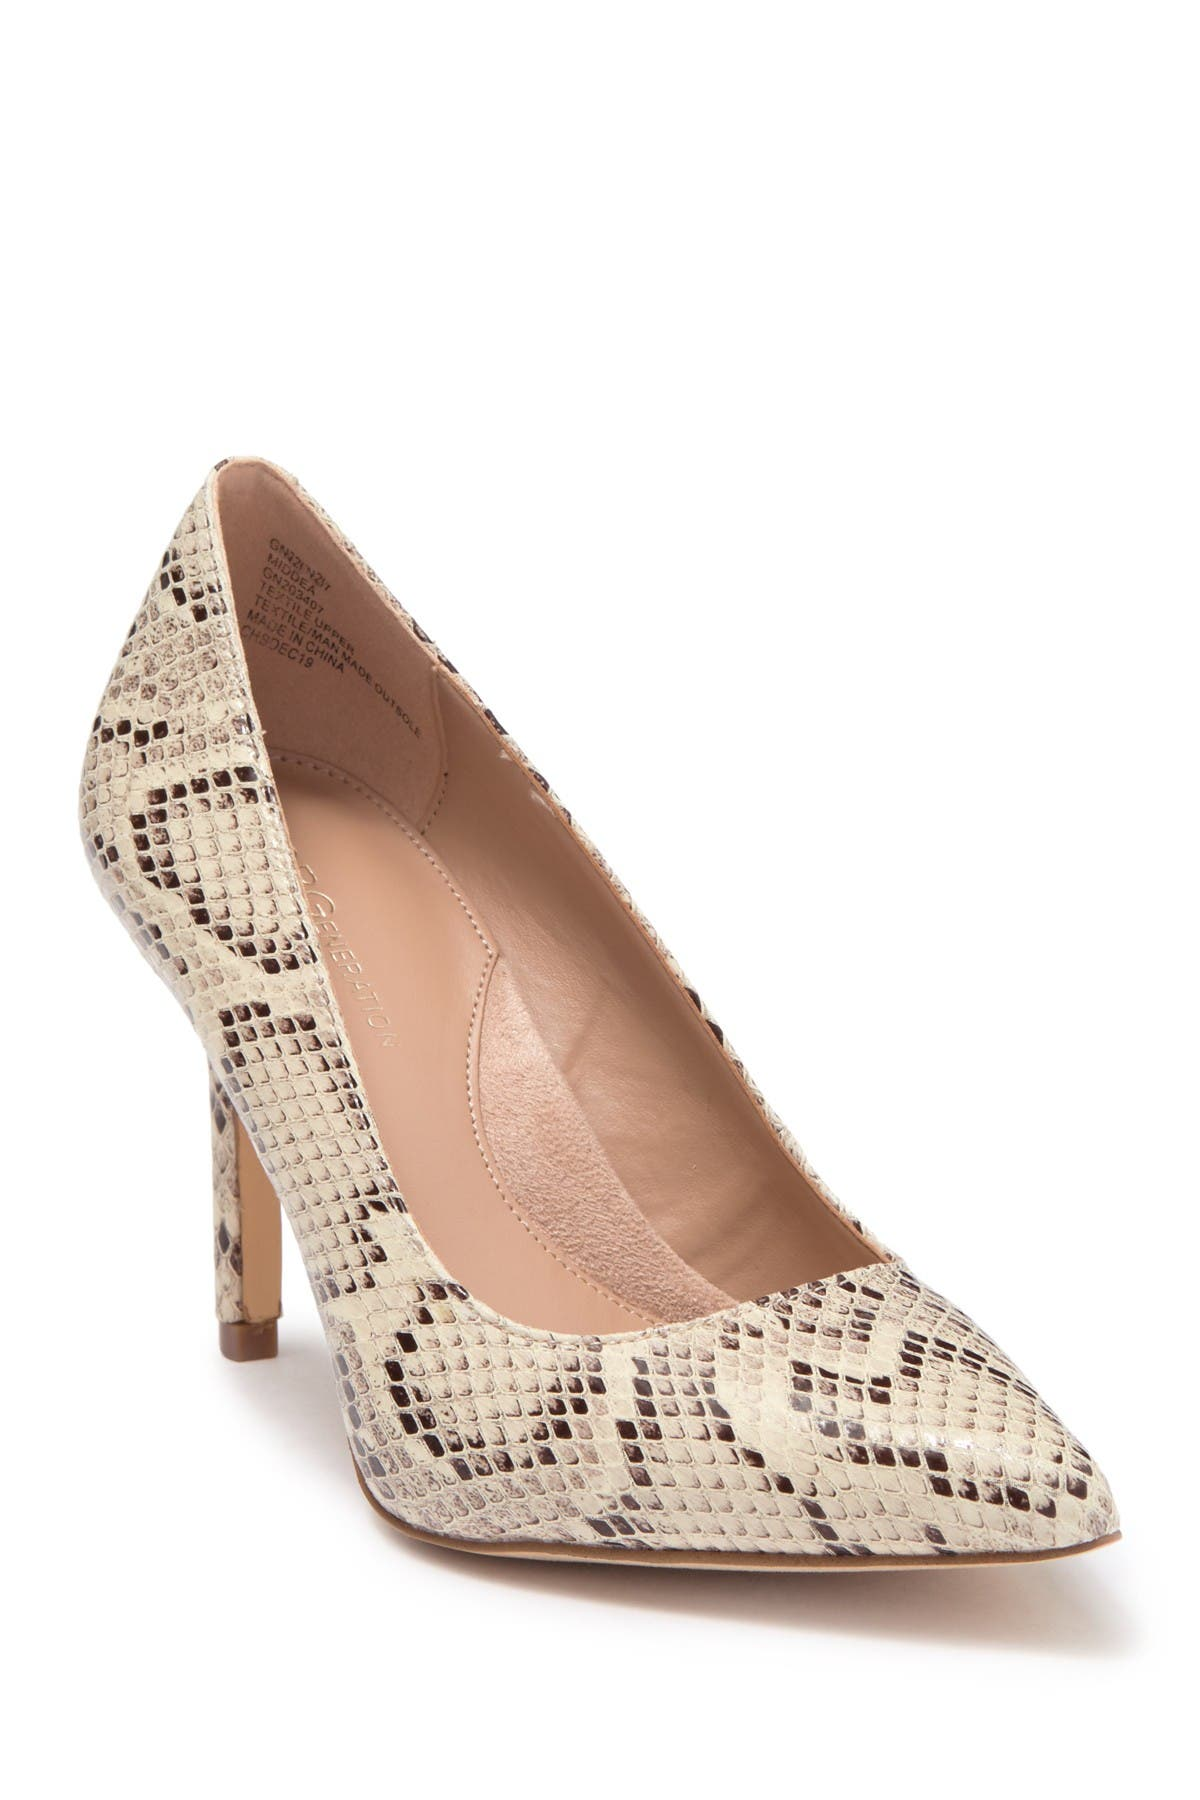 Image of BCBGeneration Middea Pointed Toe Pump